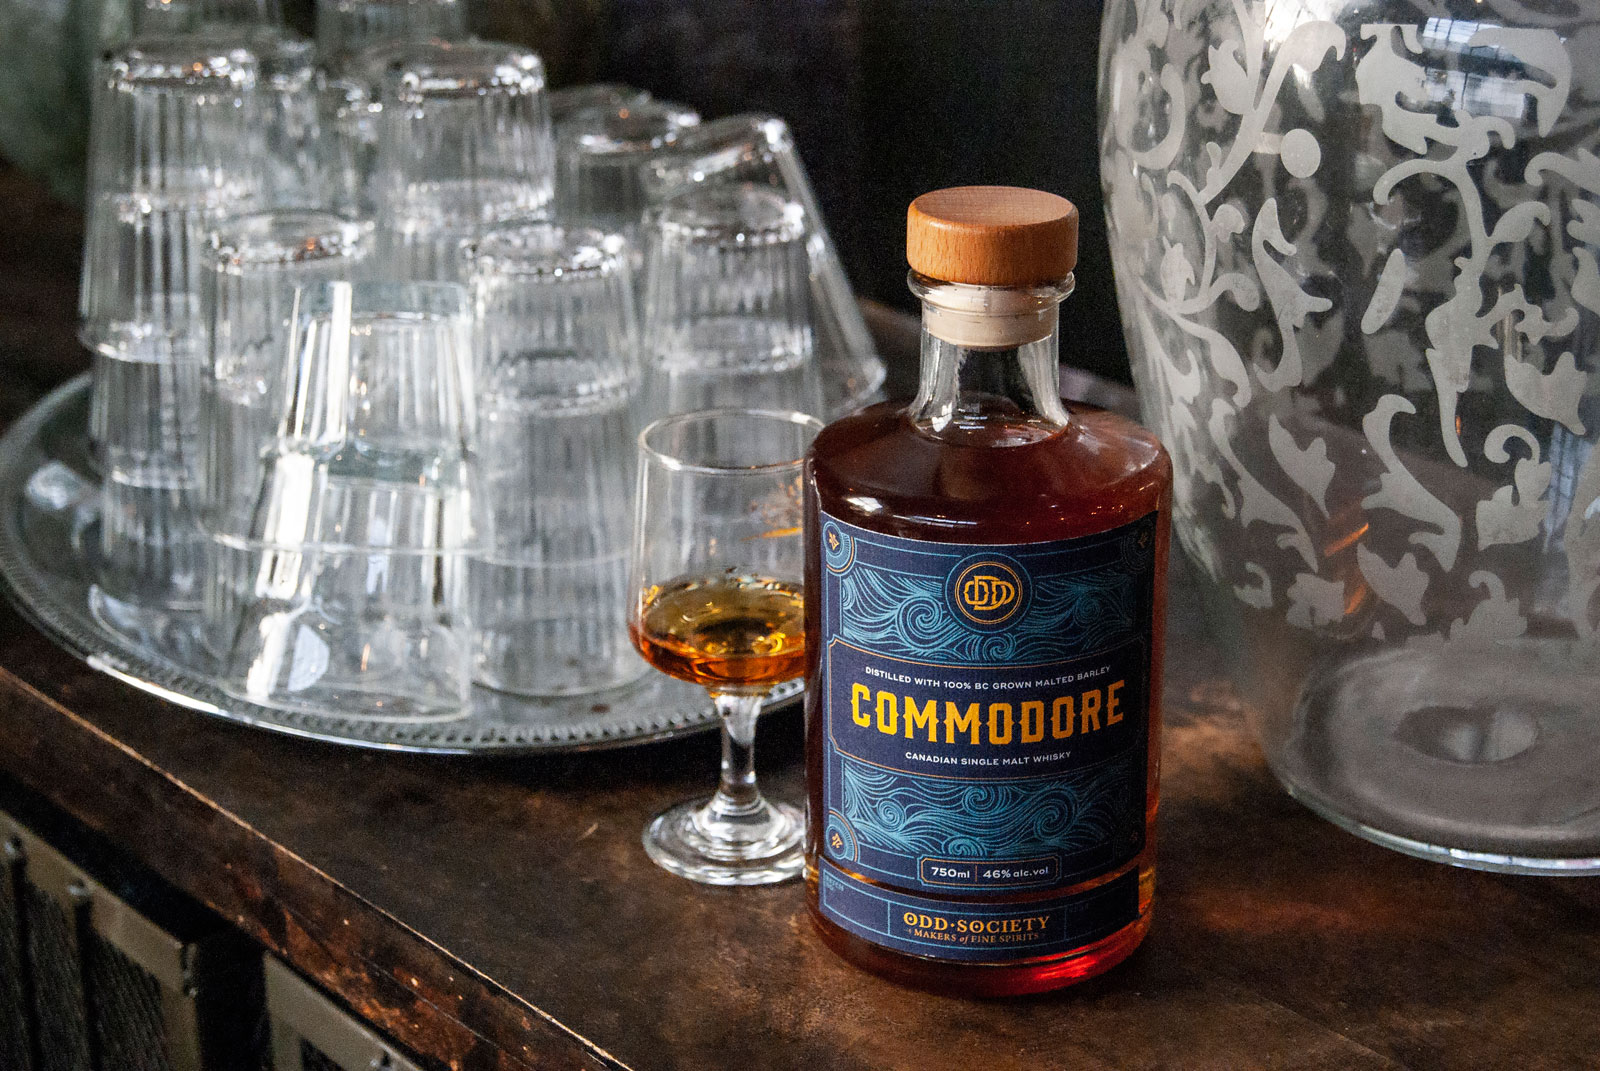 New Batch of Odd Society's Commodore Single Malt Whisky Released in Time for Father's Day